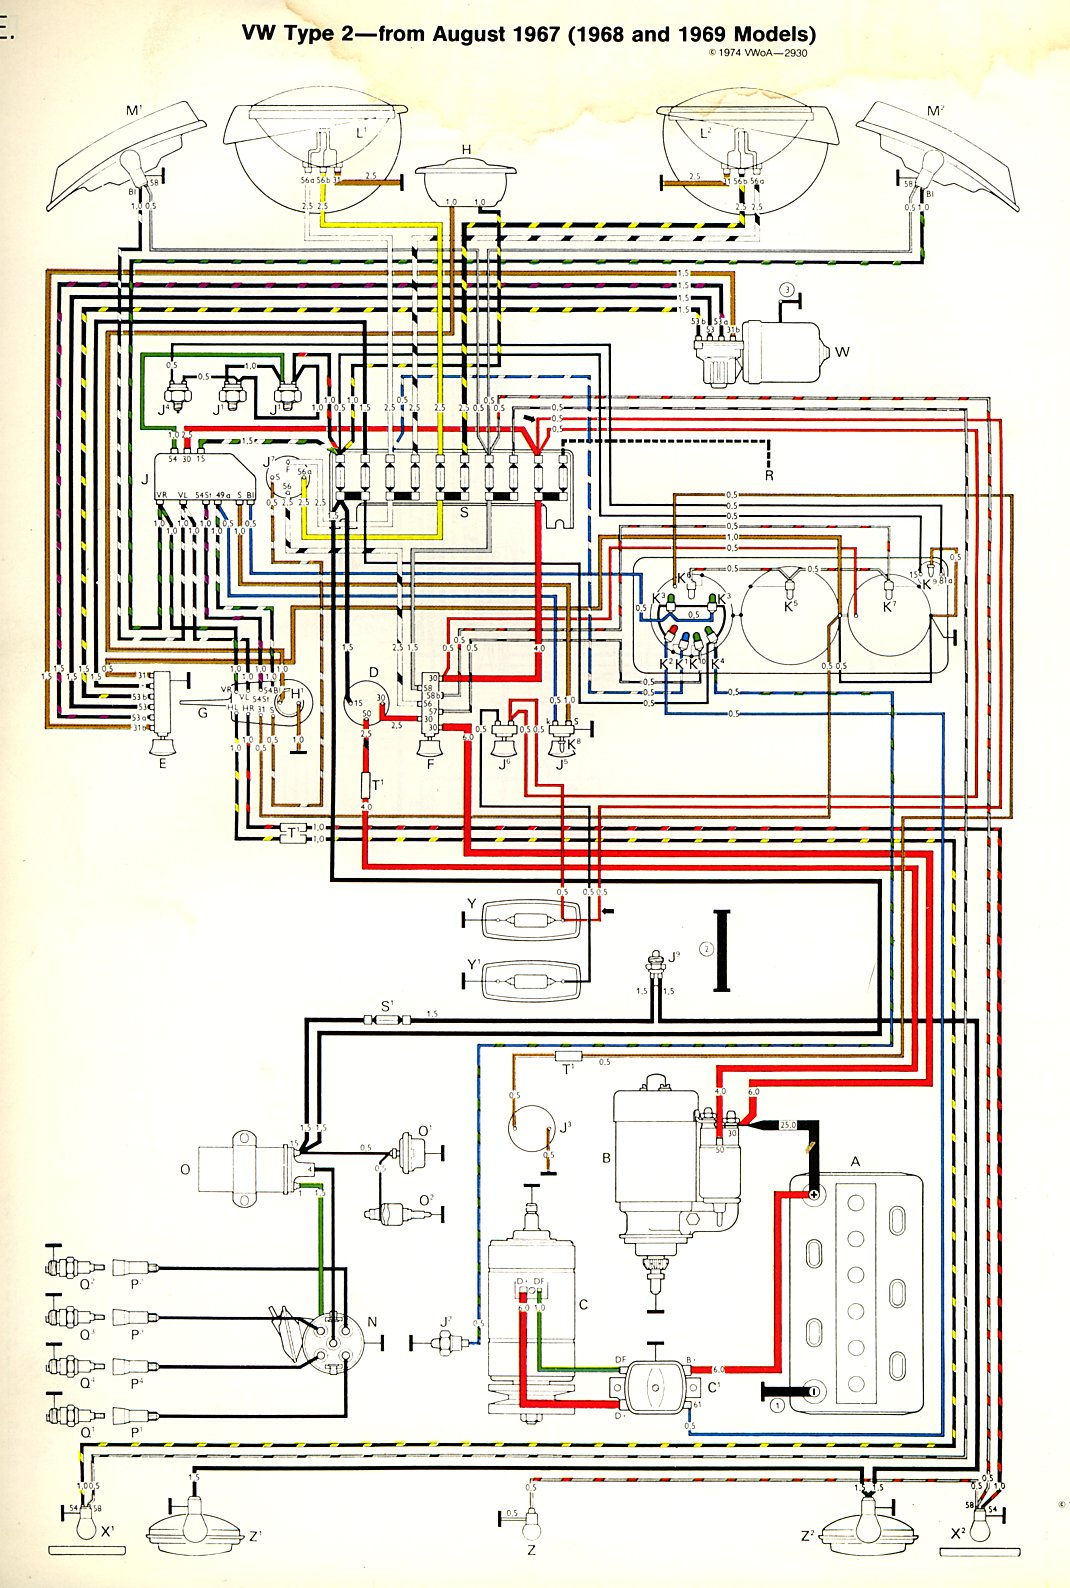 thesamba.com :: type 2 wiring diagrams 1968 vw bug generator wiring 1968 vw bug wiring